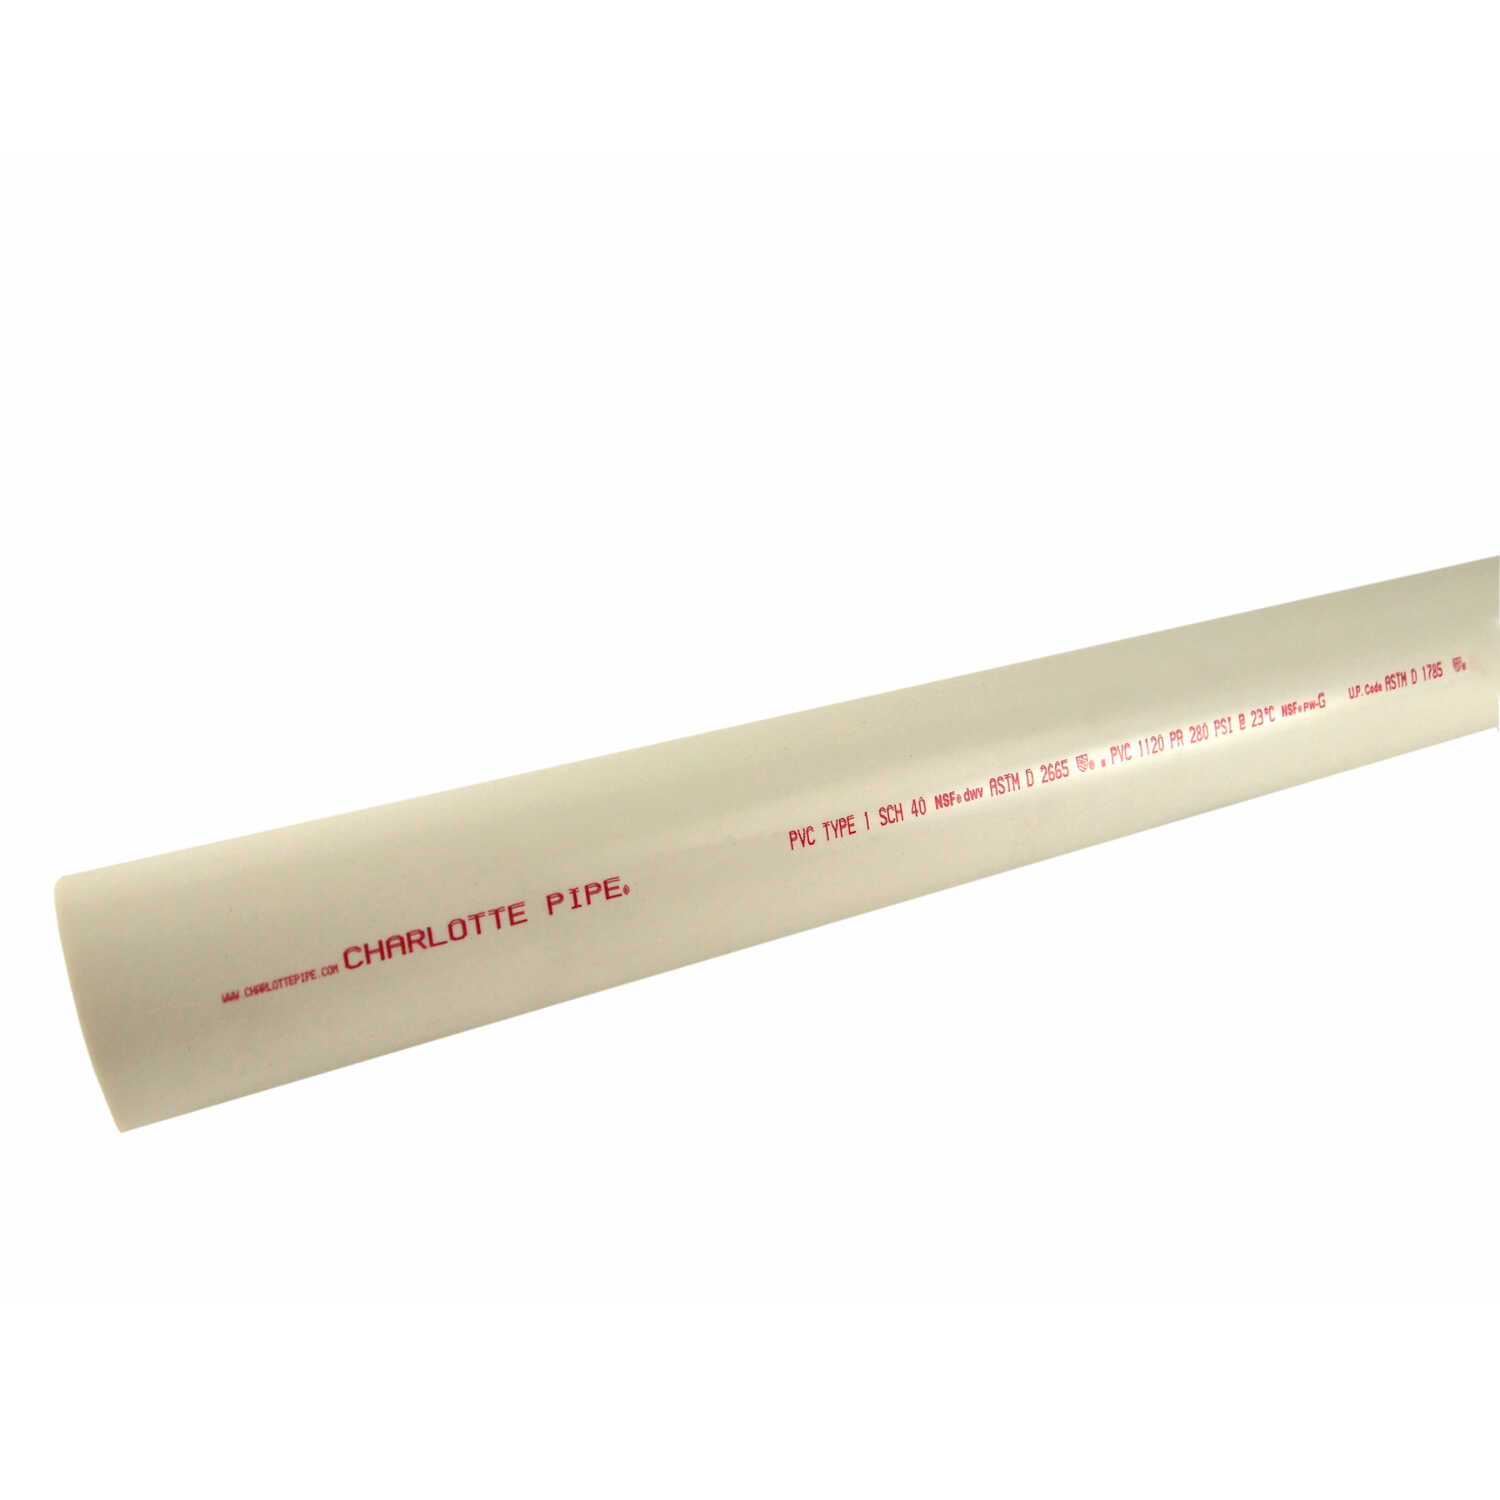 Cresline  PVC Pipe  3 in. Dia. x 20 ft. L Plain End  Schedule 40  260 psi